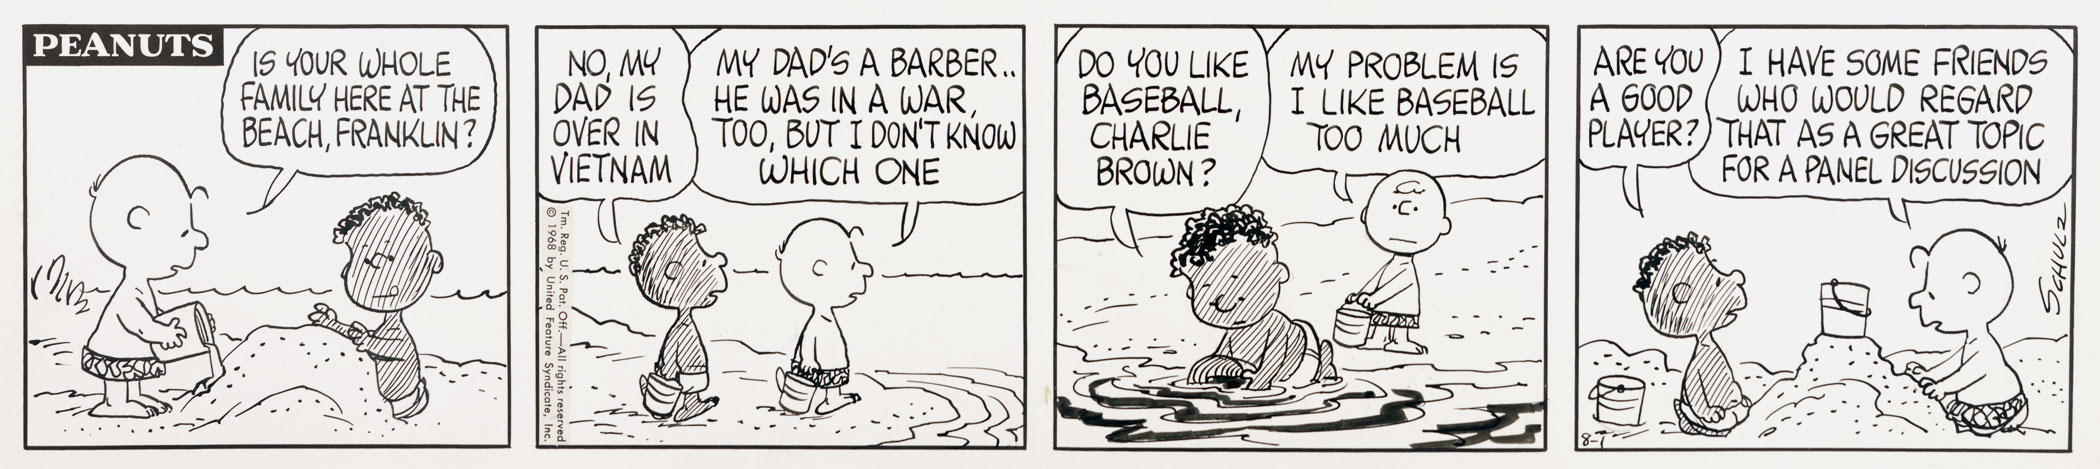 Peanuts, August 1, 1968 Shortly after the assassination of Rev. Dr. Martin Luther King, Jr., Los Angeles schoolteacher, Harriet Glickman, wrote to Schulz regarding the integration of Peanuts. She believed that the popular comic strip could help influence American attitudes on race, and as a result of their correspondence, Franklin was introduced to the cartoon in the summer of 1968.